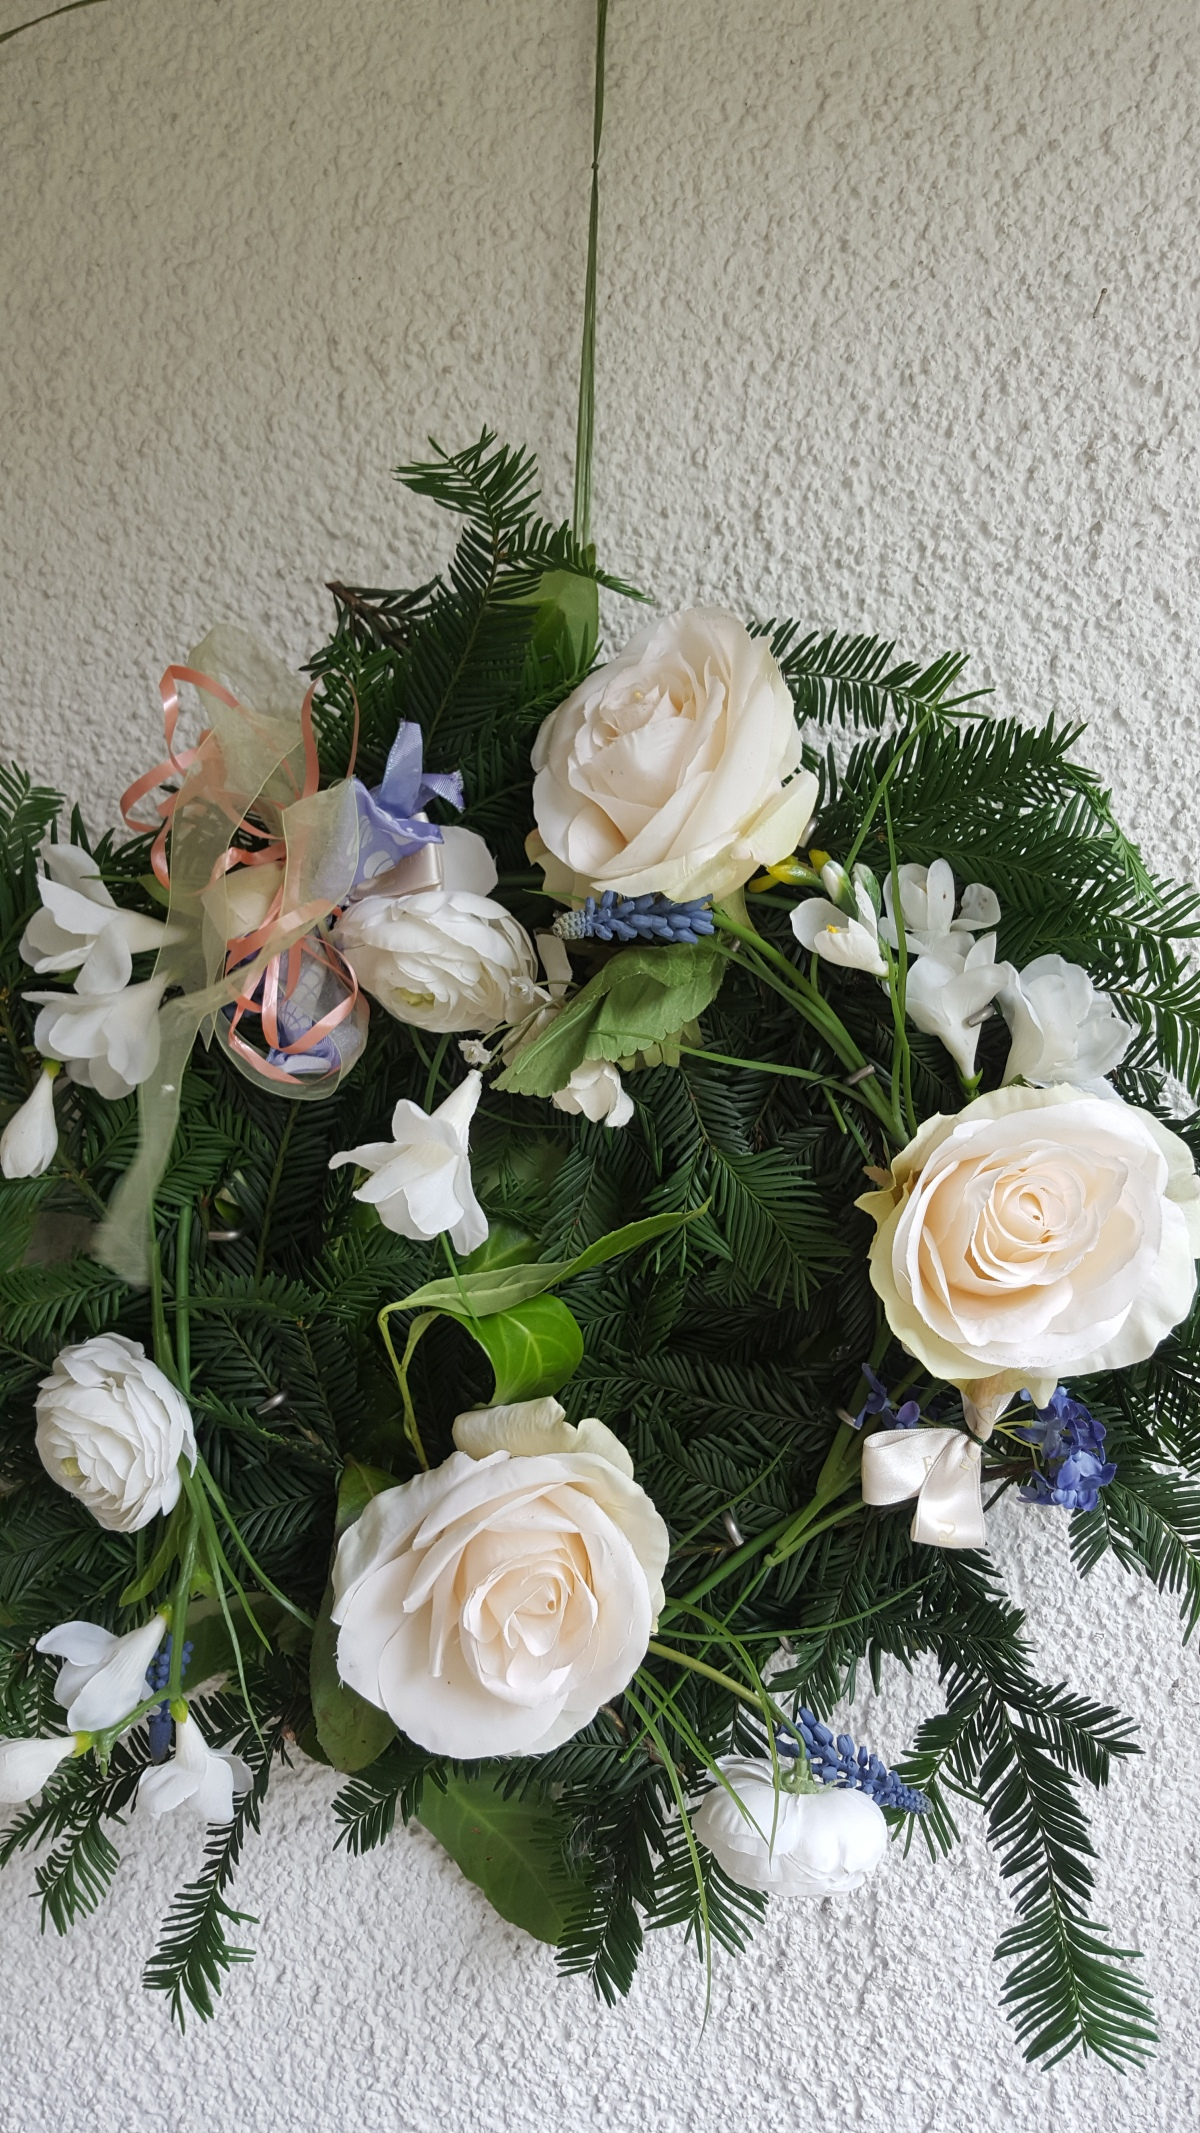 Wrap a Wreath of W(hite)Roses